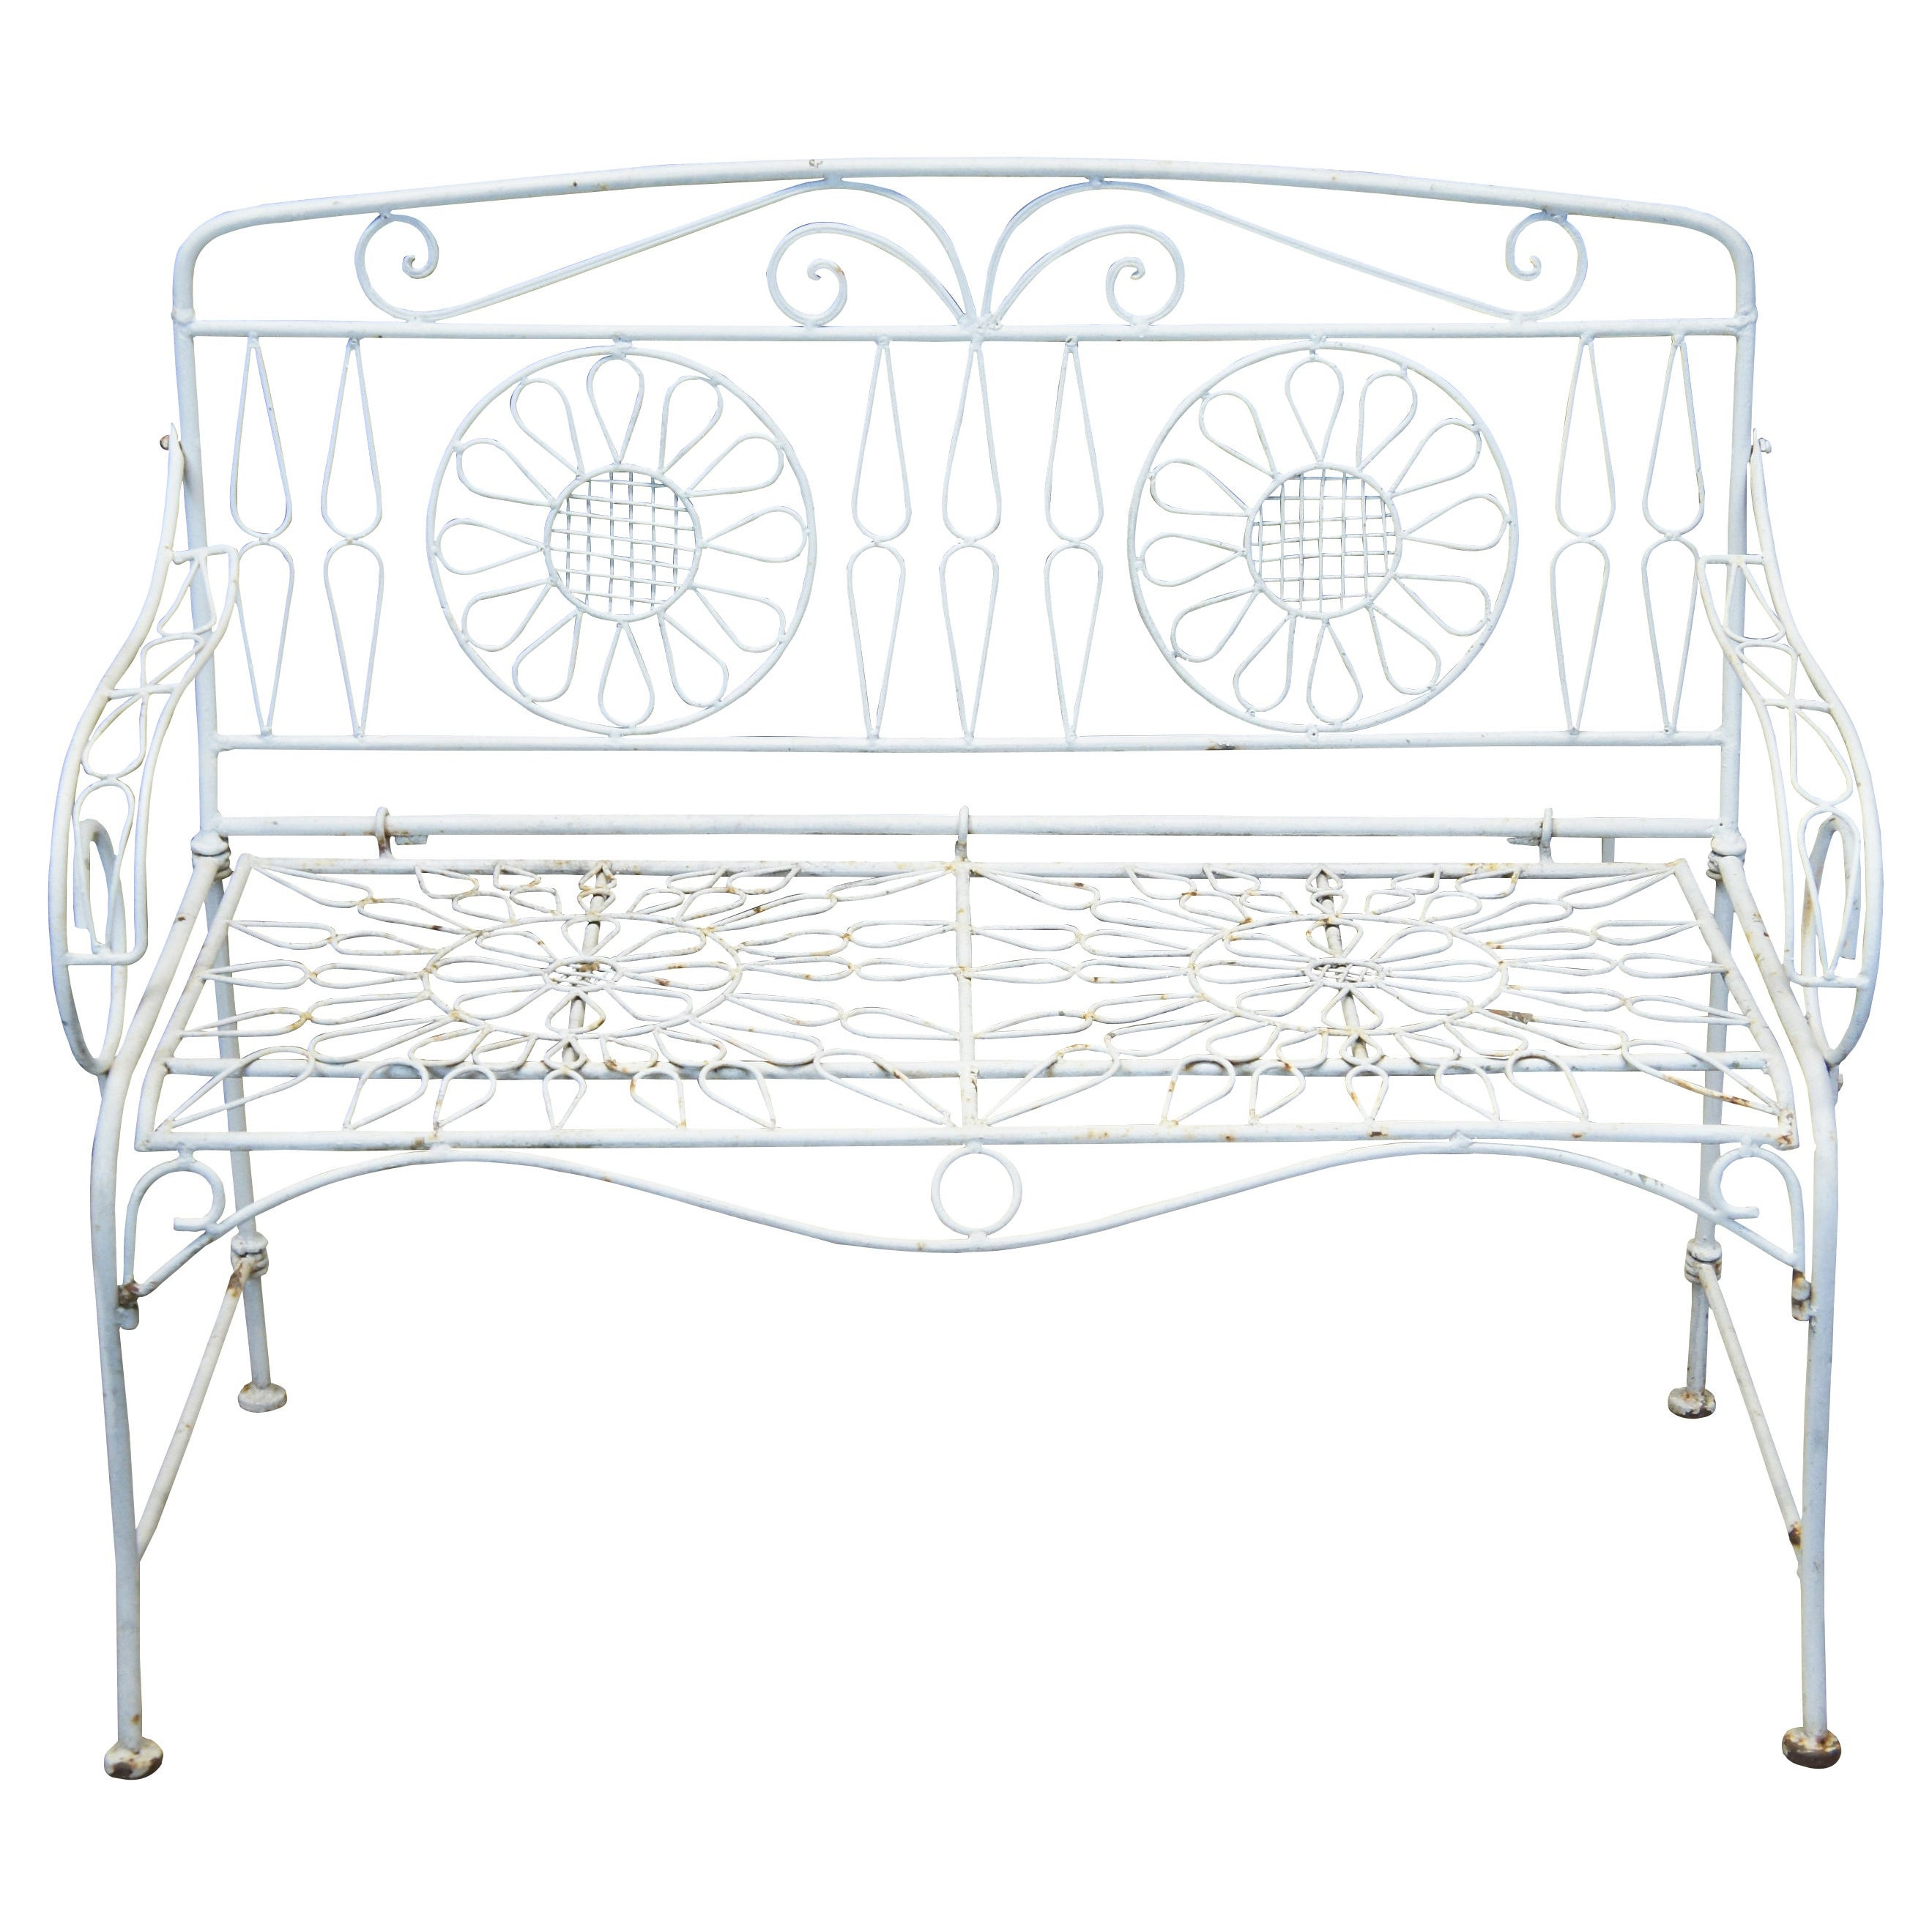 Mid 20th Century White Wrought Iron Flower Back Patio Settee Garden Bench Seat